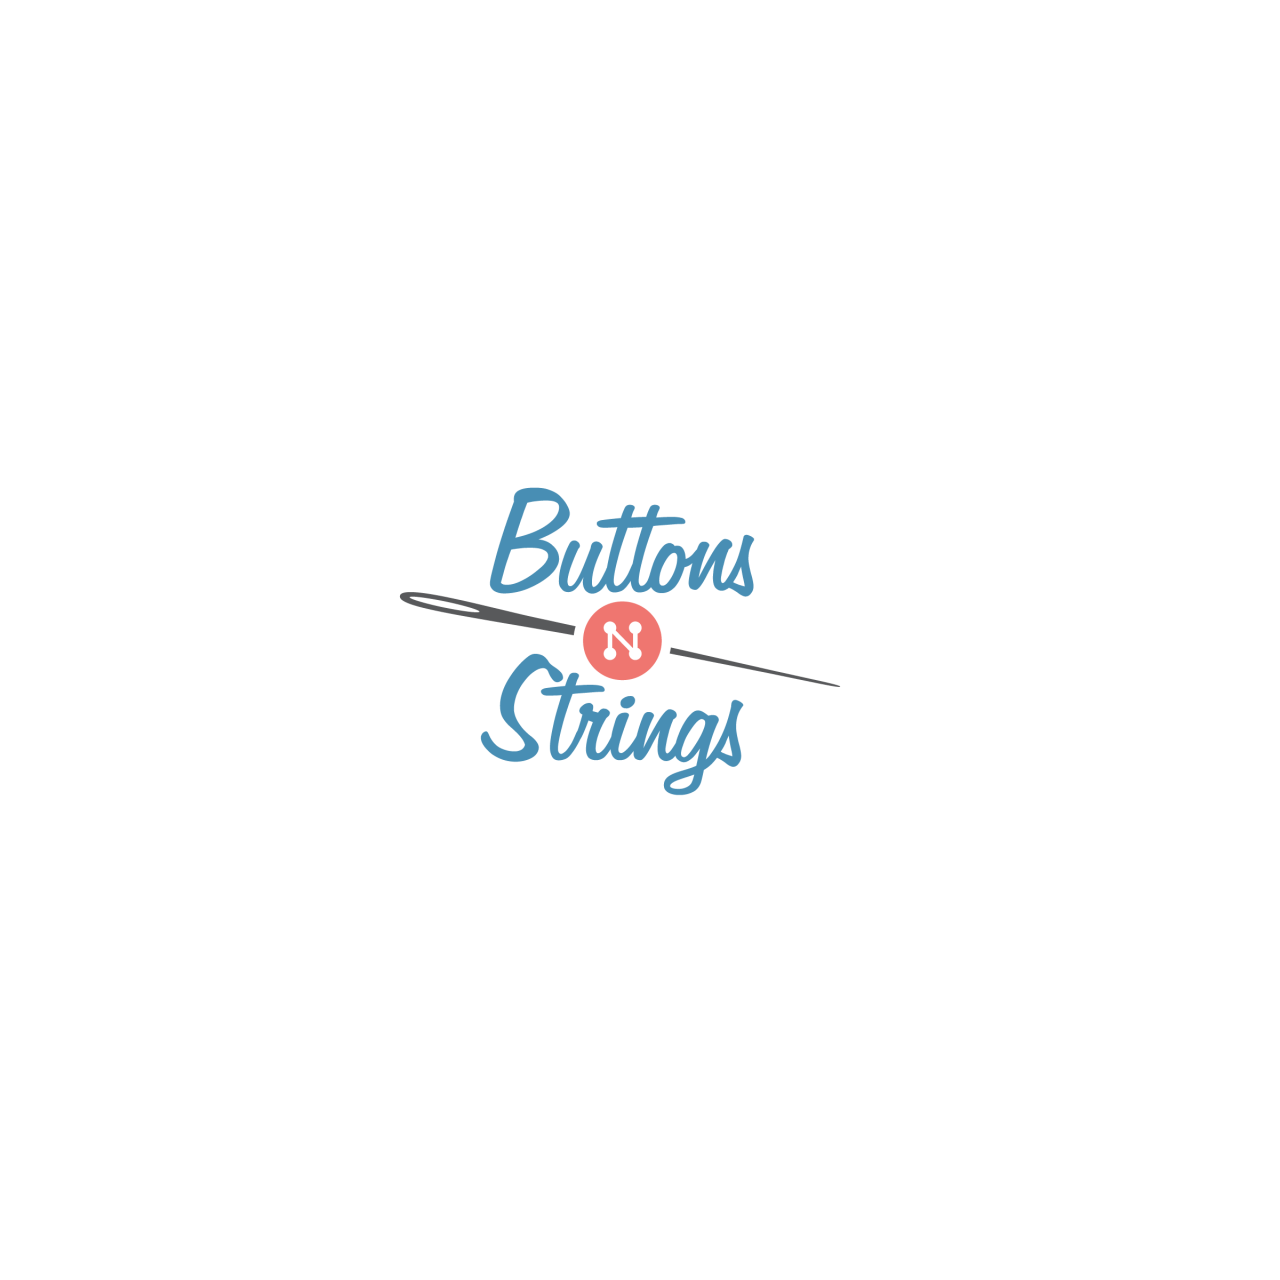 Image of Buttons 'n Strings logo